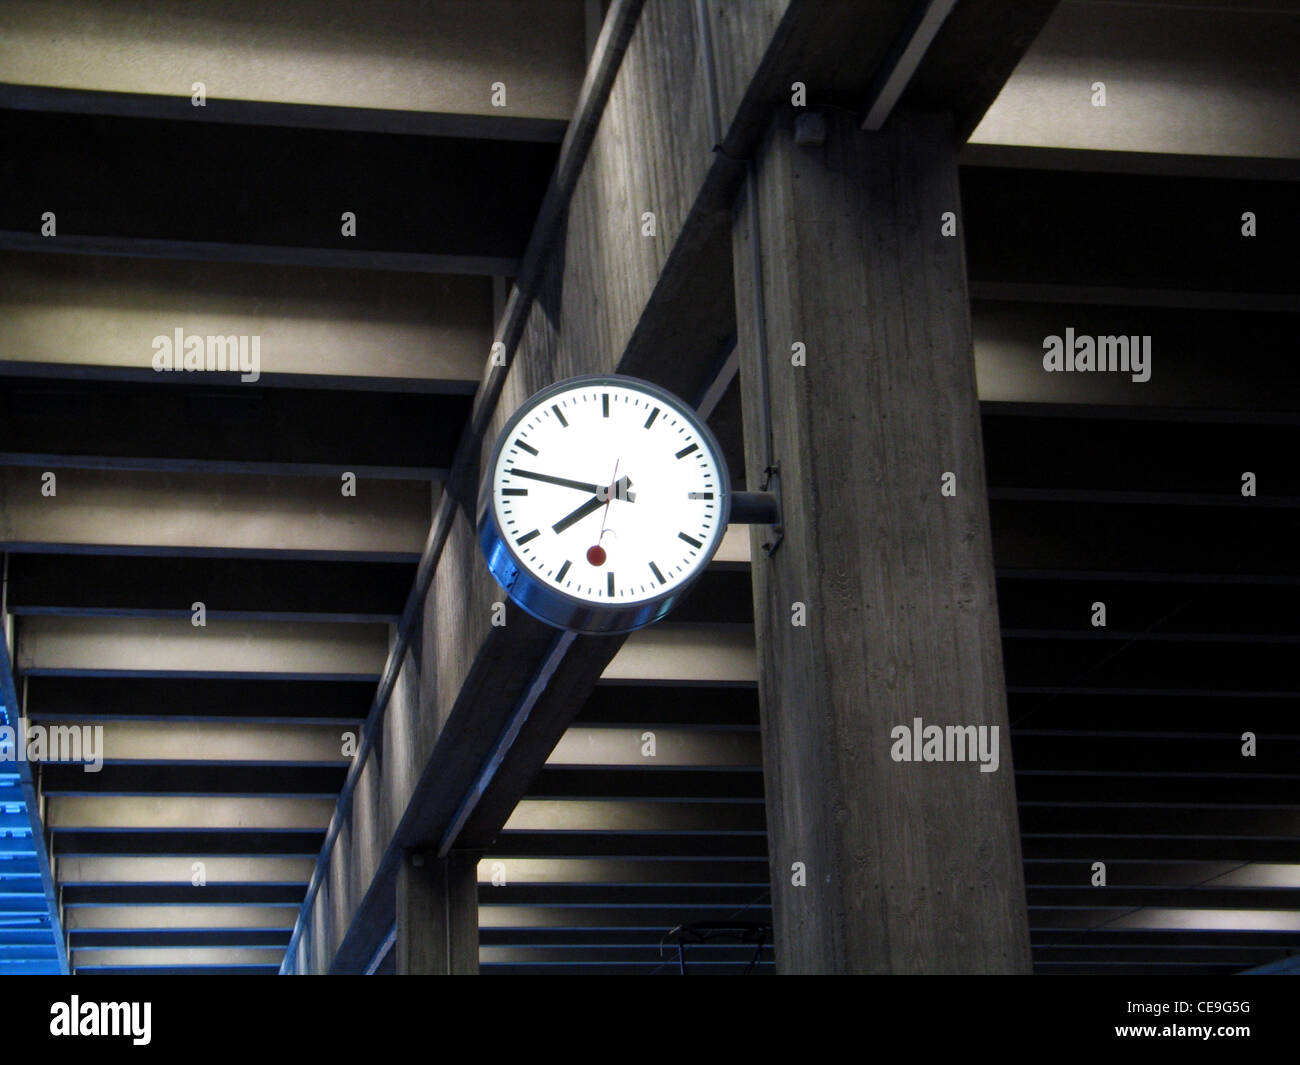 Classic analog clock at a railway station in Switzerland - Stock Image